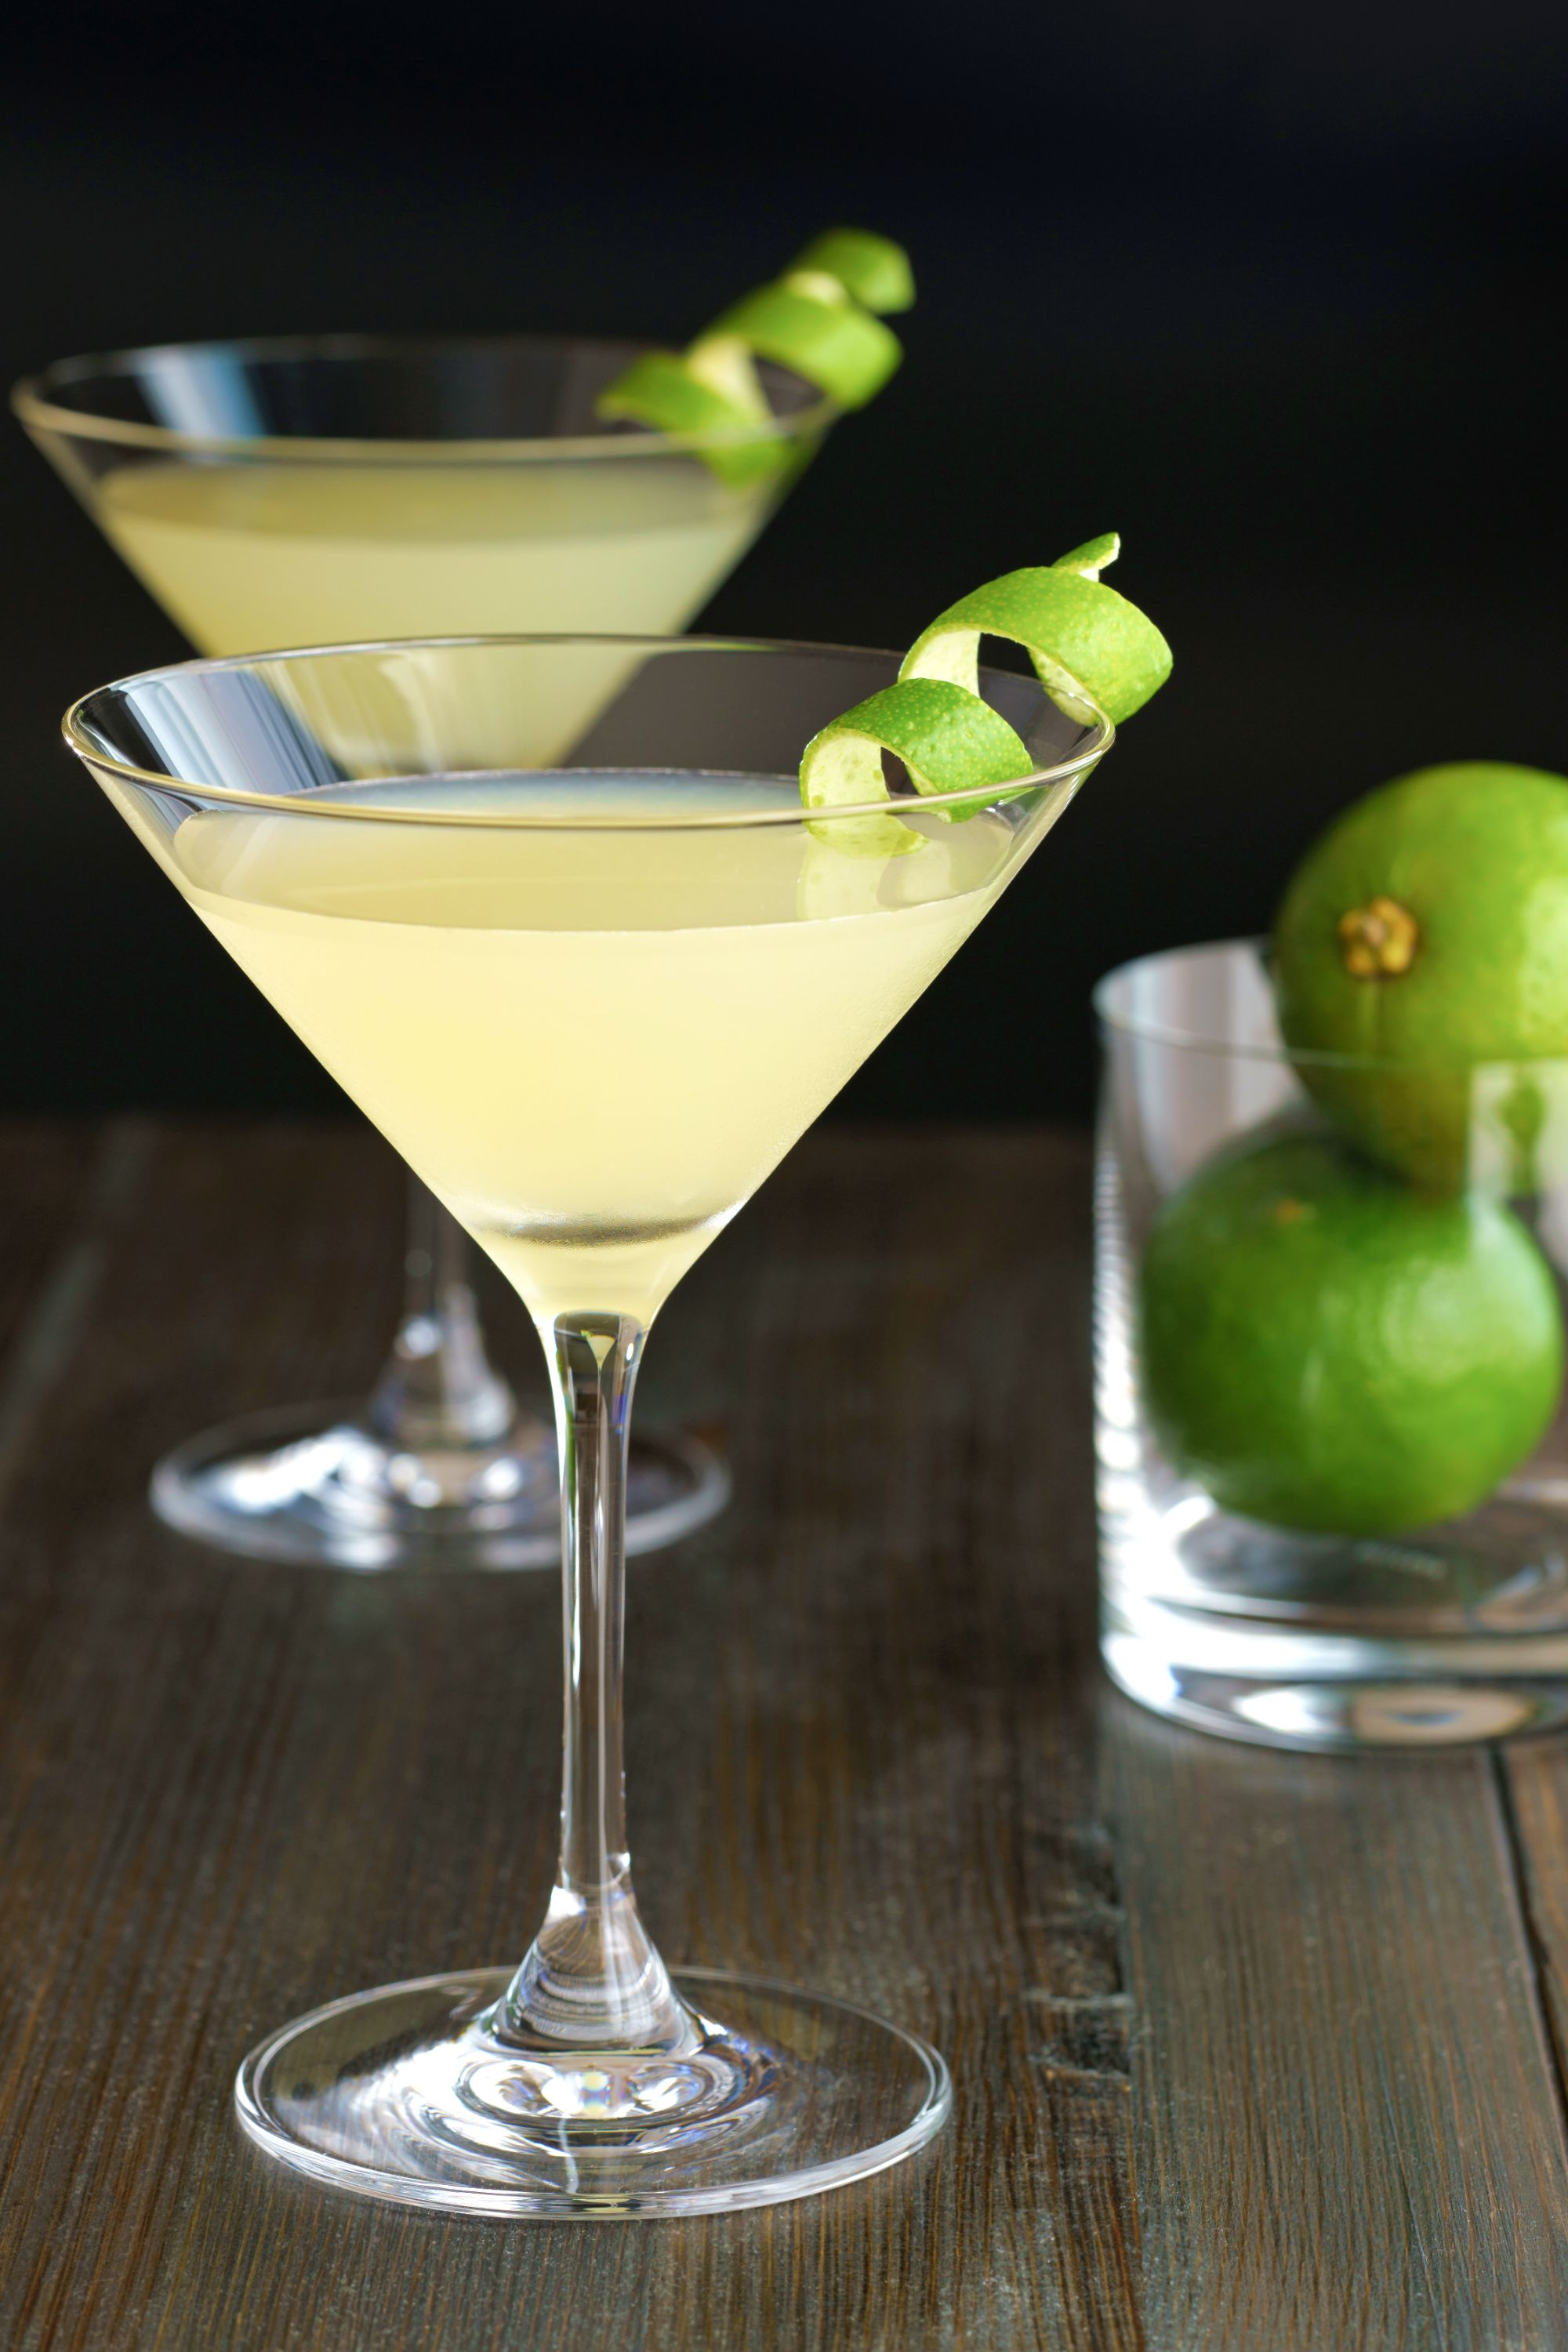 The Elderflower Martini cocktail recipe blends St. Germain liqueur with gin, vermouth and lime juice. It's one of those cocktails that's delicious with almost any food or on any occasion.